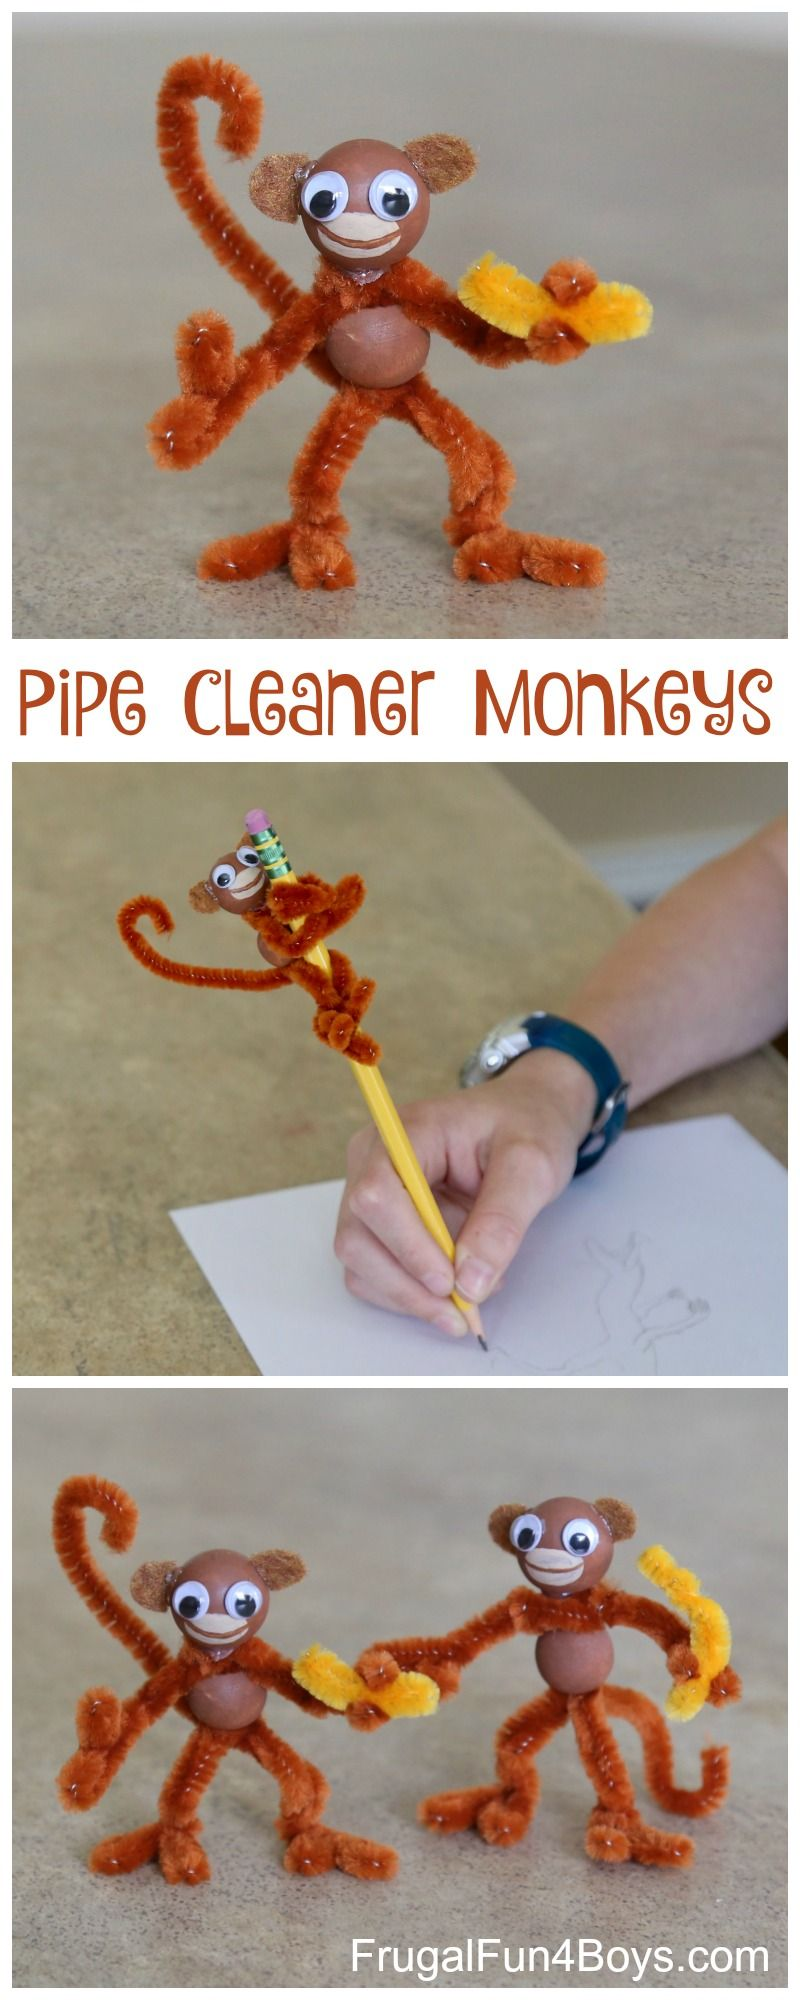 Kids' Craft: Pipe Cleaner Monkeys #craftsforkids